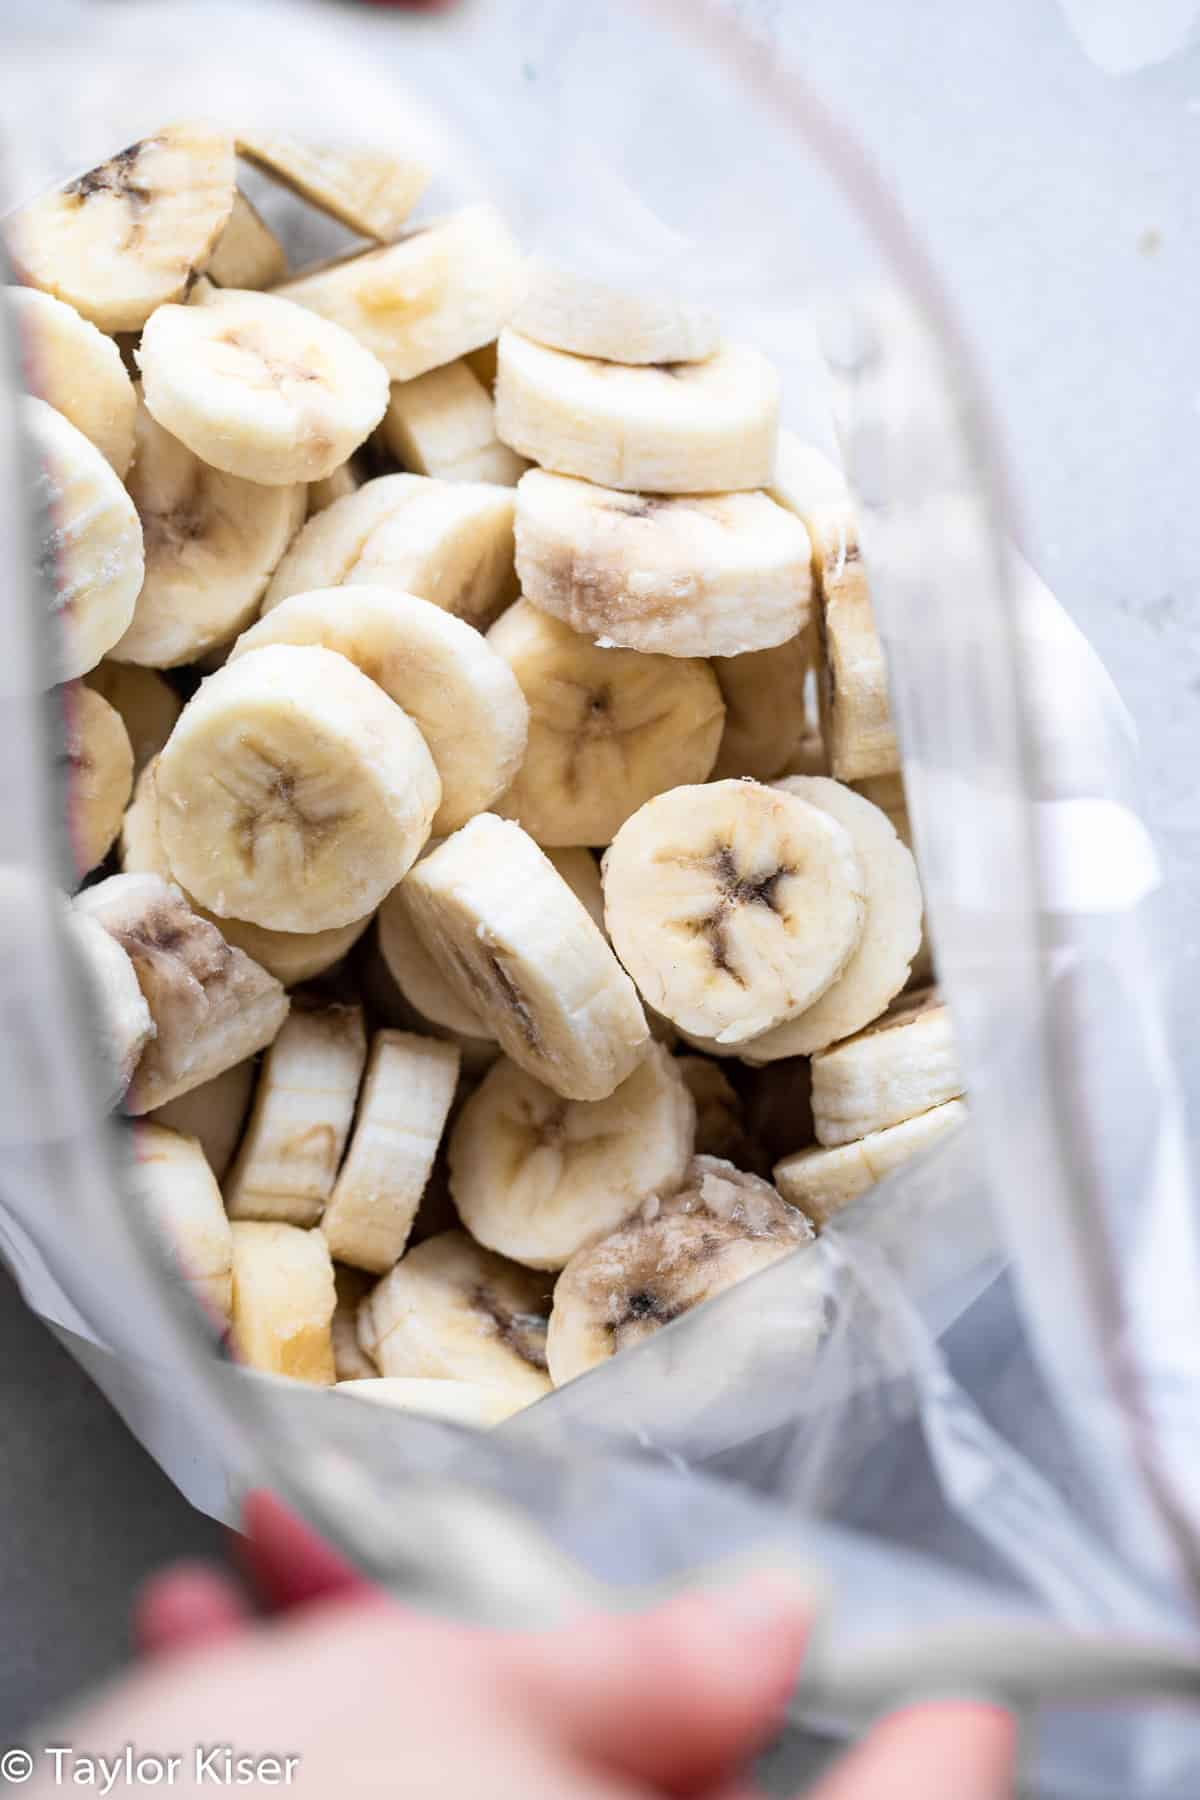 sliced bananas in a bag